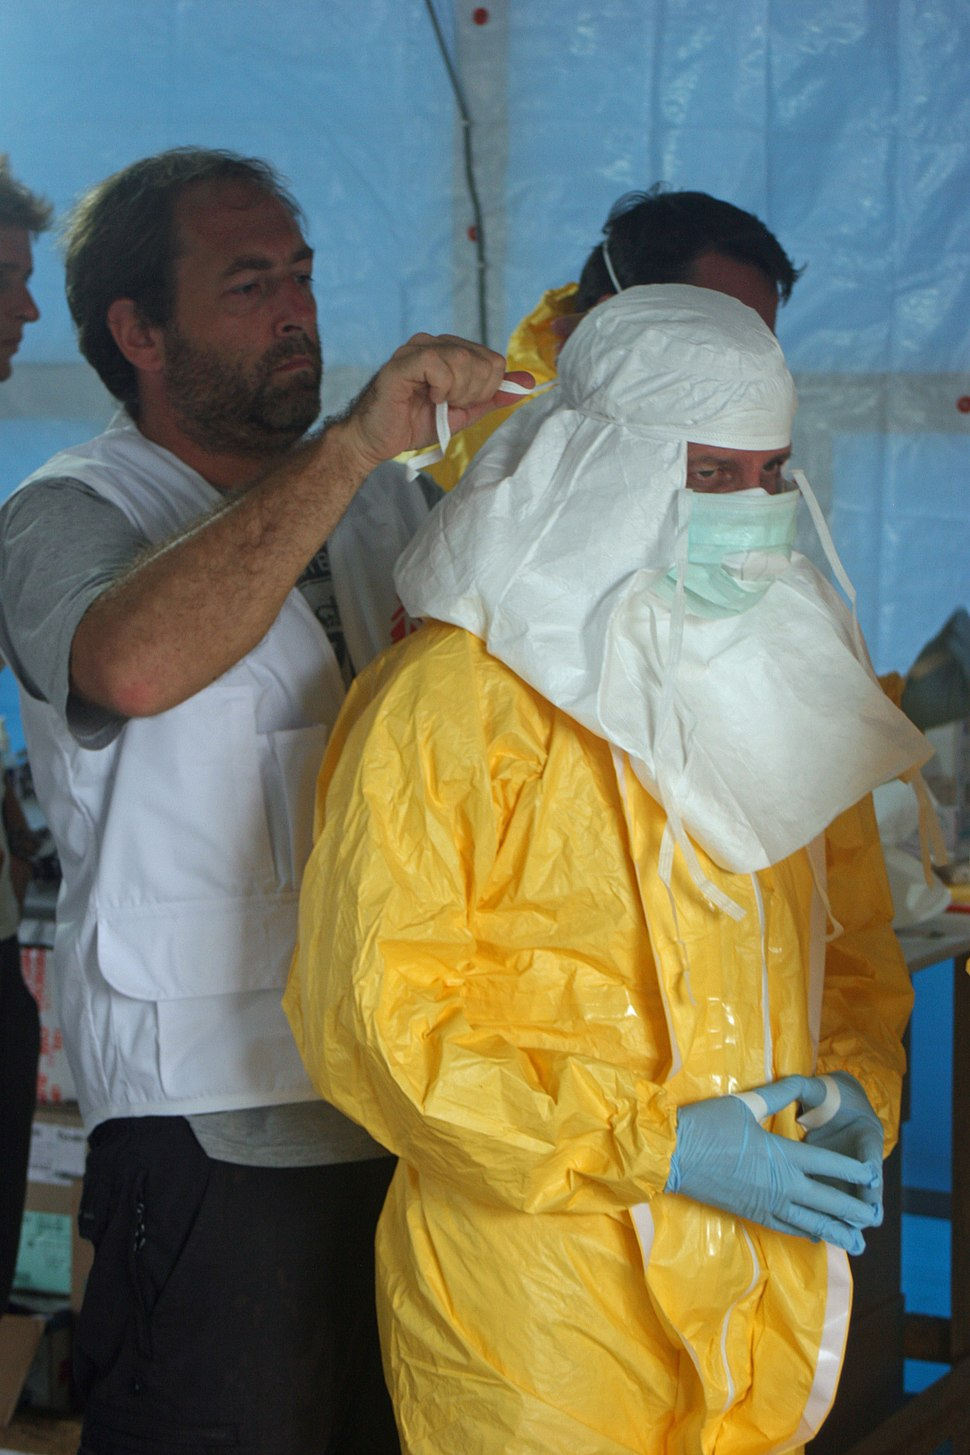 Preparing to enter Ebola treatment unit